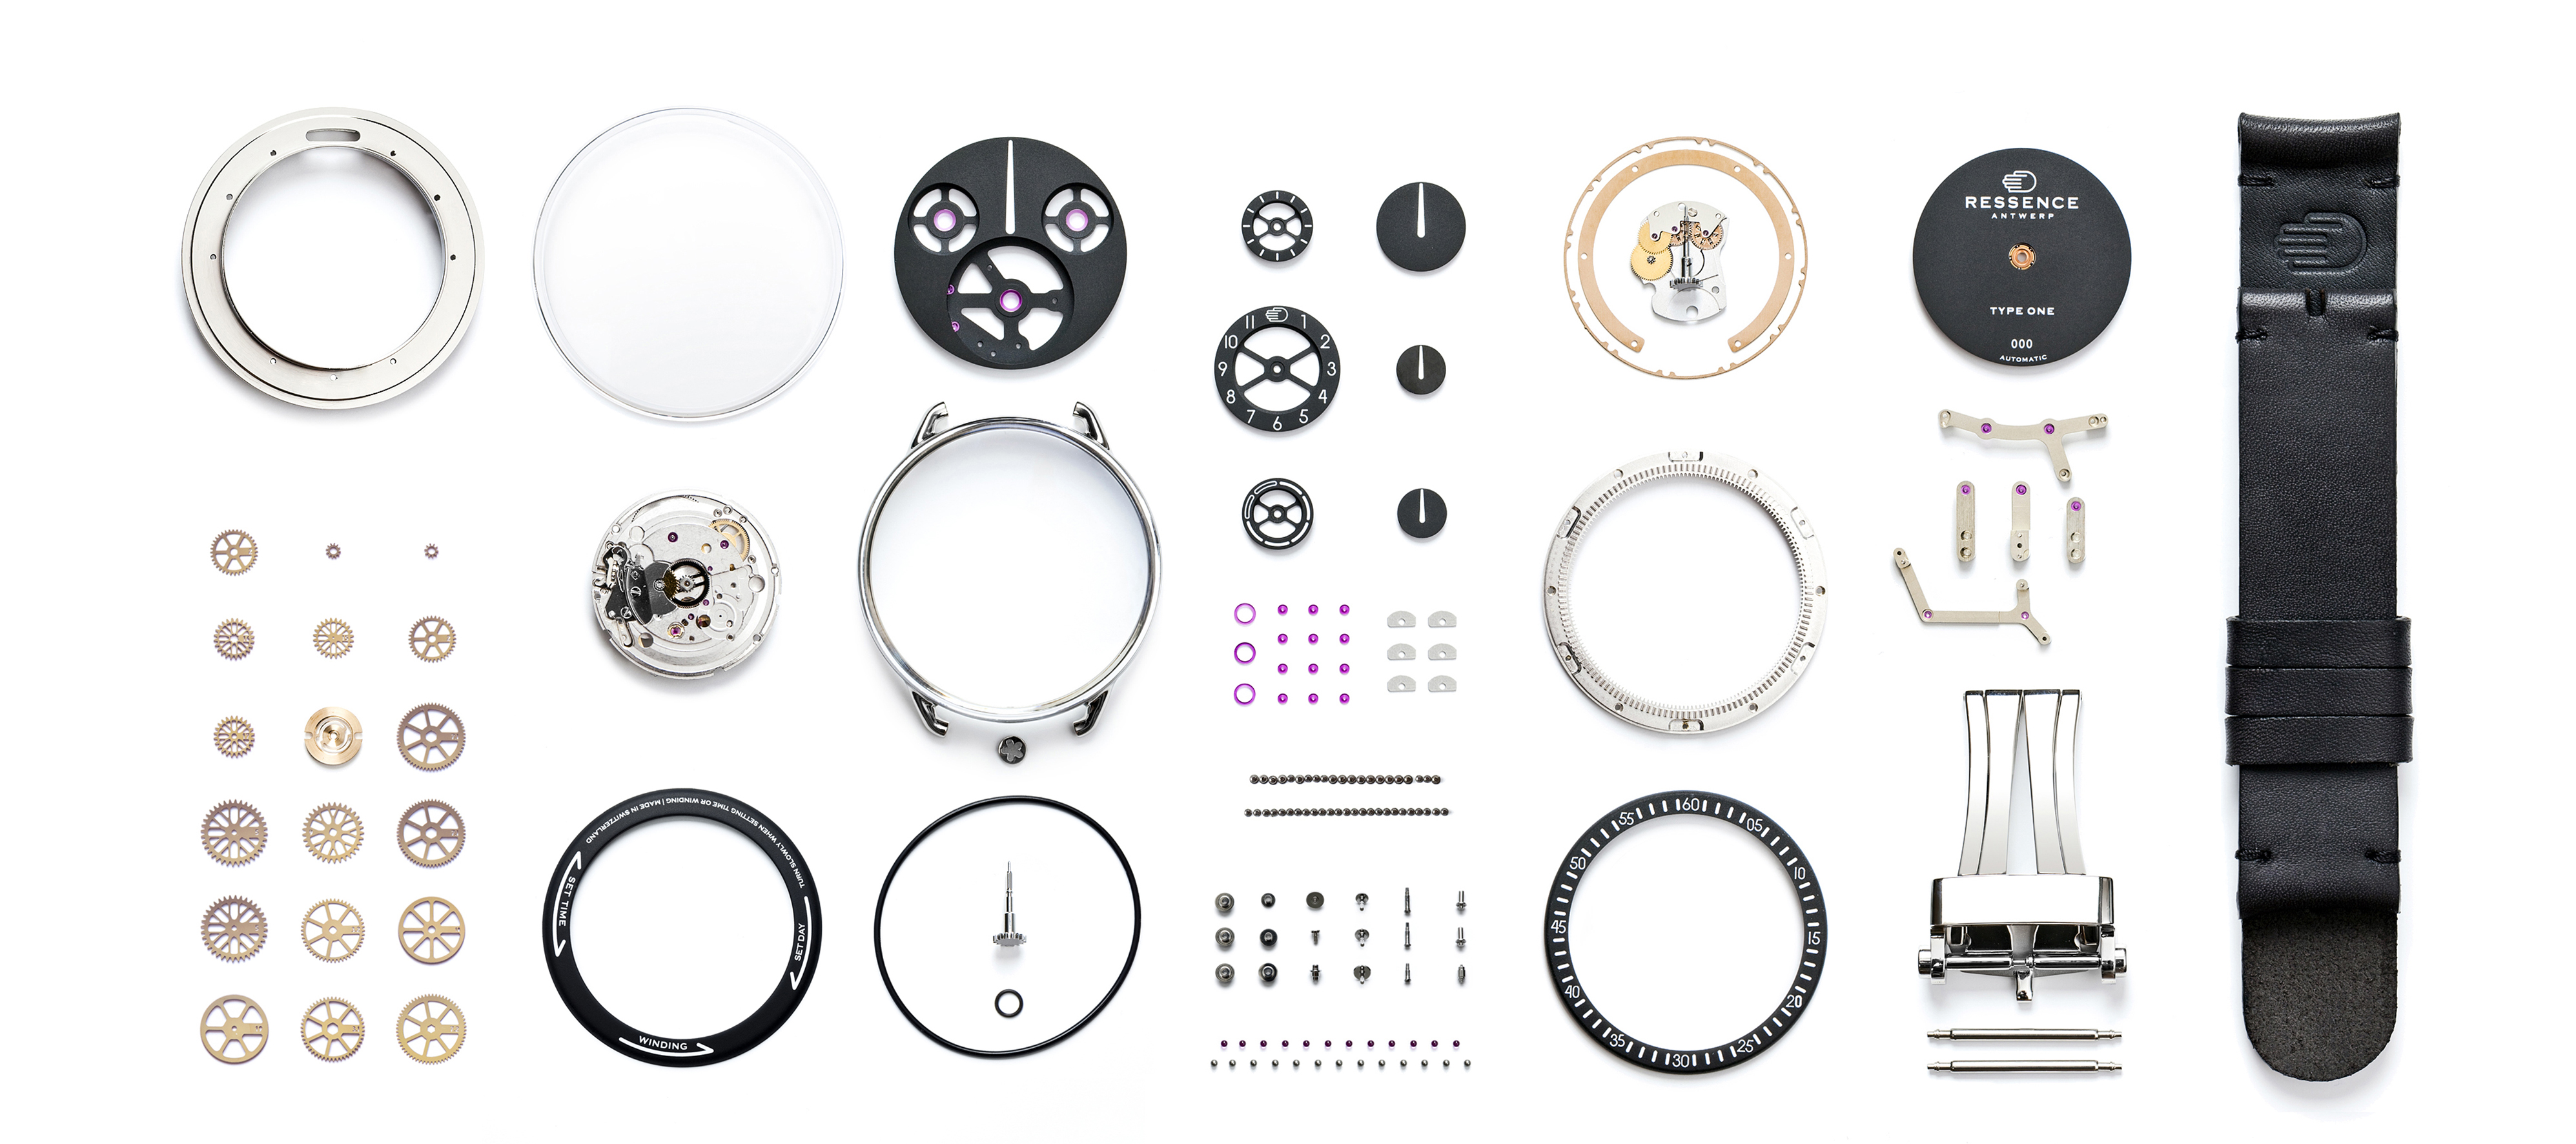 ressence_type1b_components